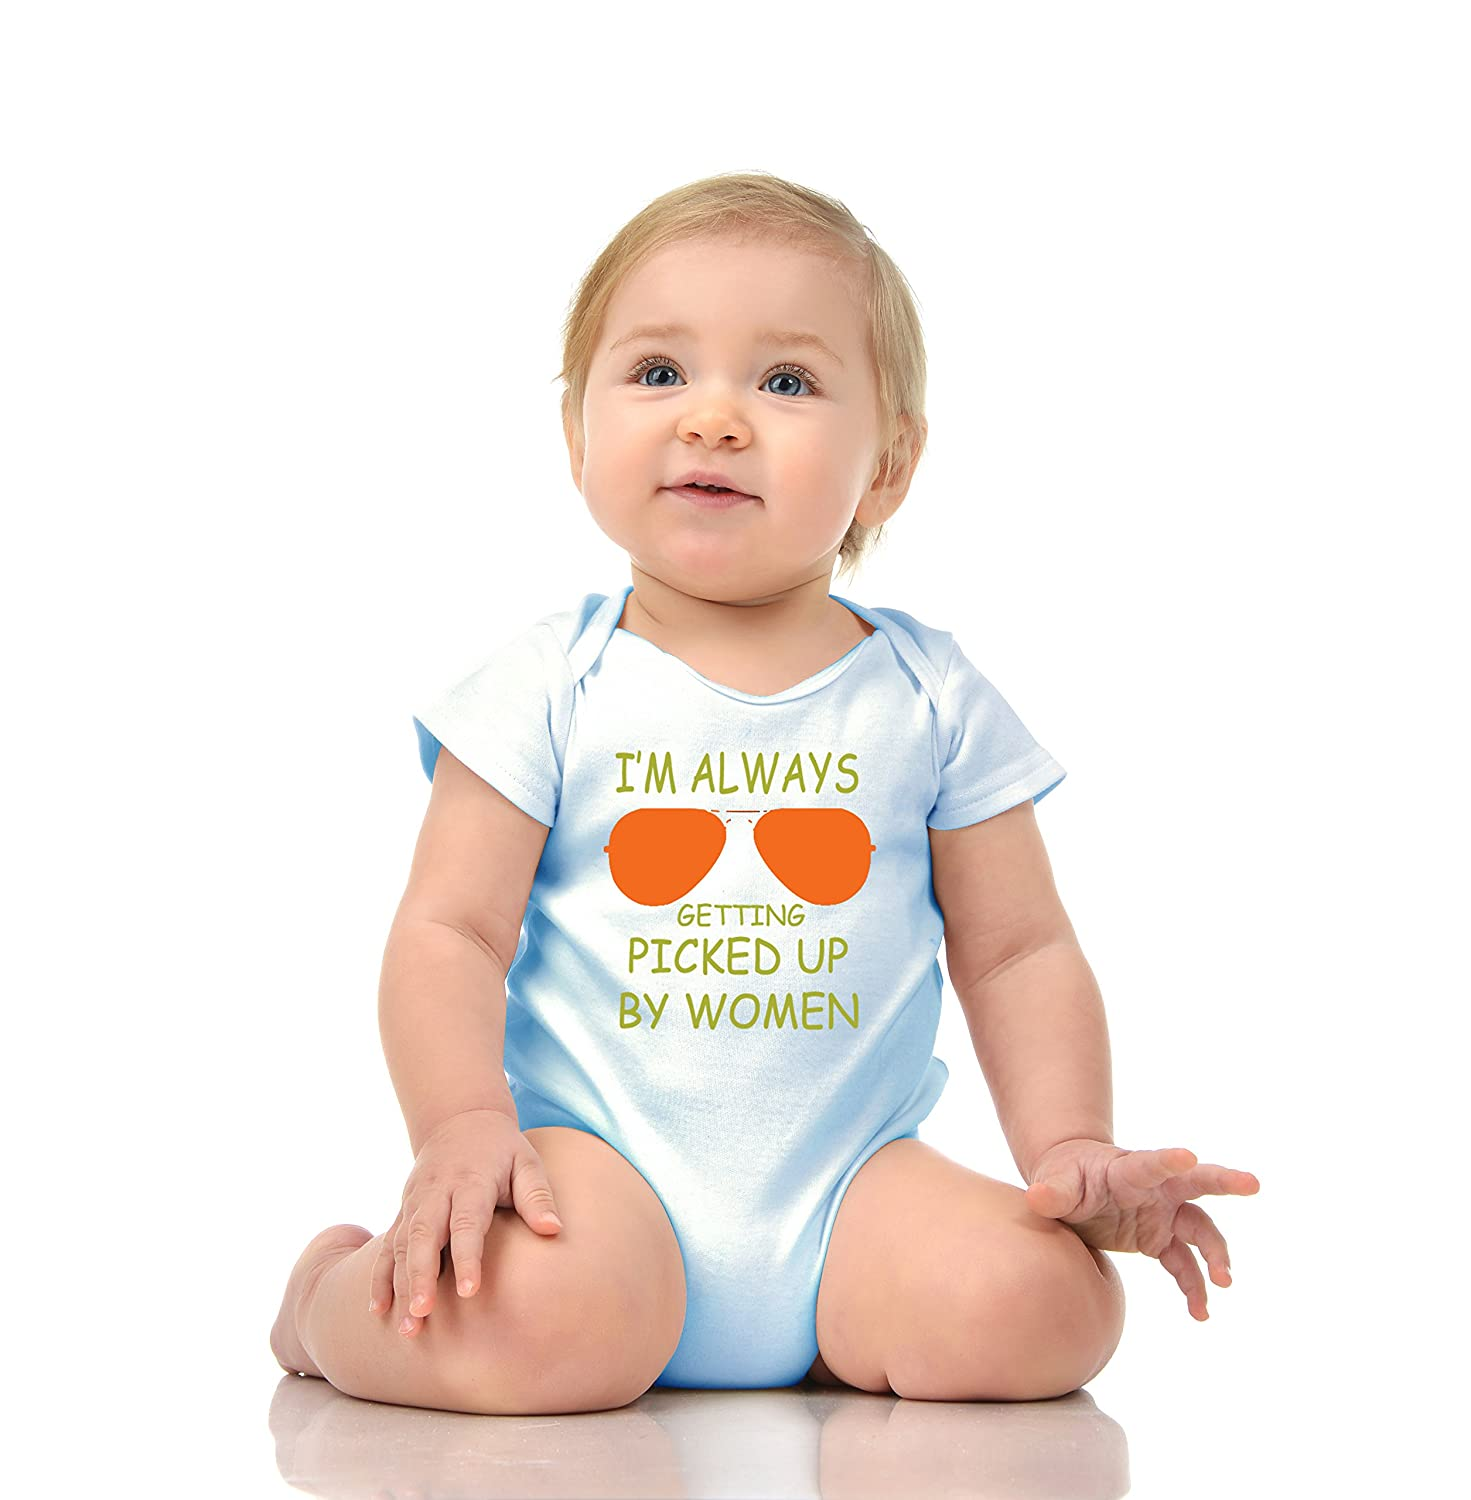 I Always GET Picked UP by A Women Funny Baby Romper Onesie Unisex Warpped and Protected with A Clear Poly Bag